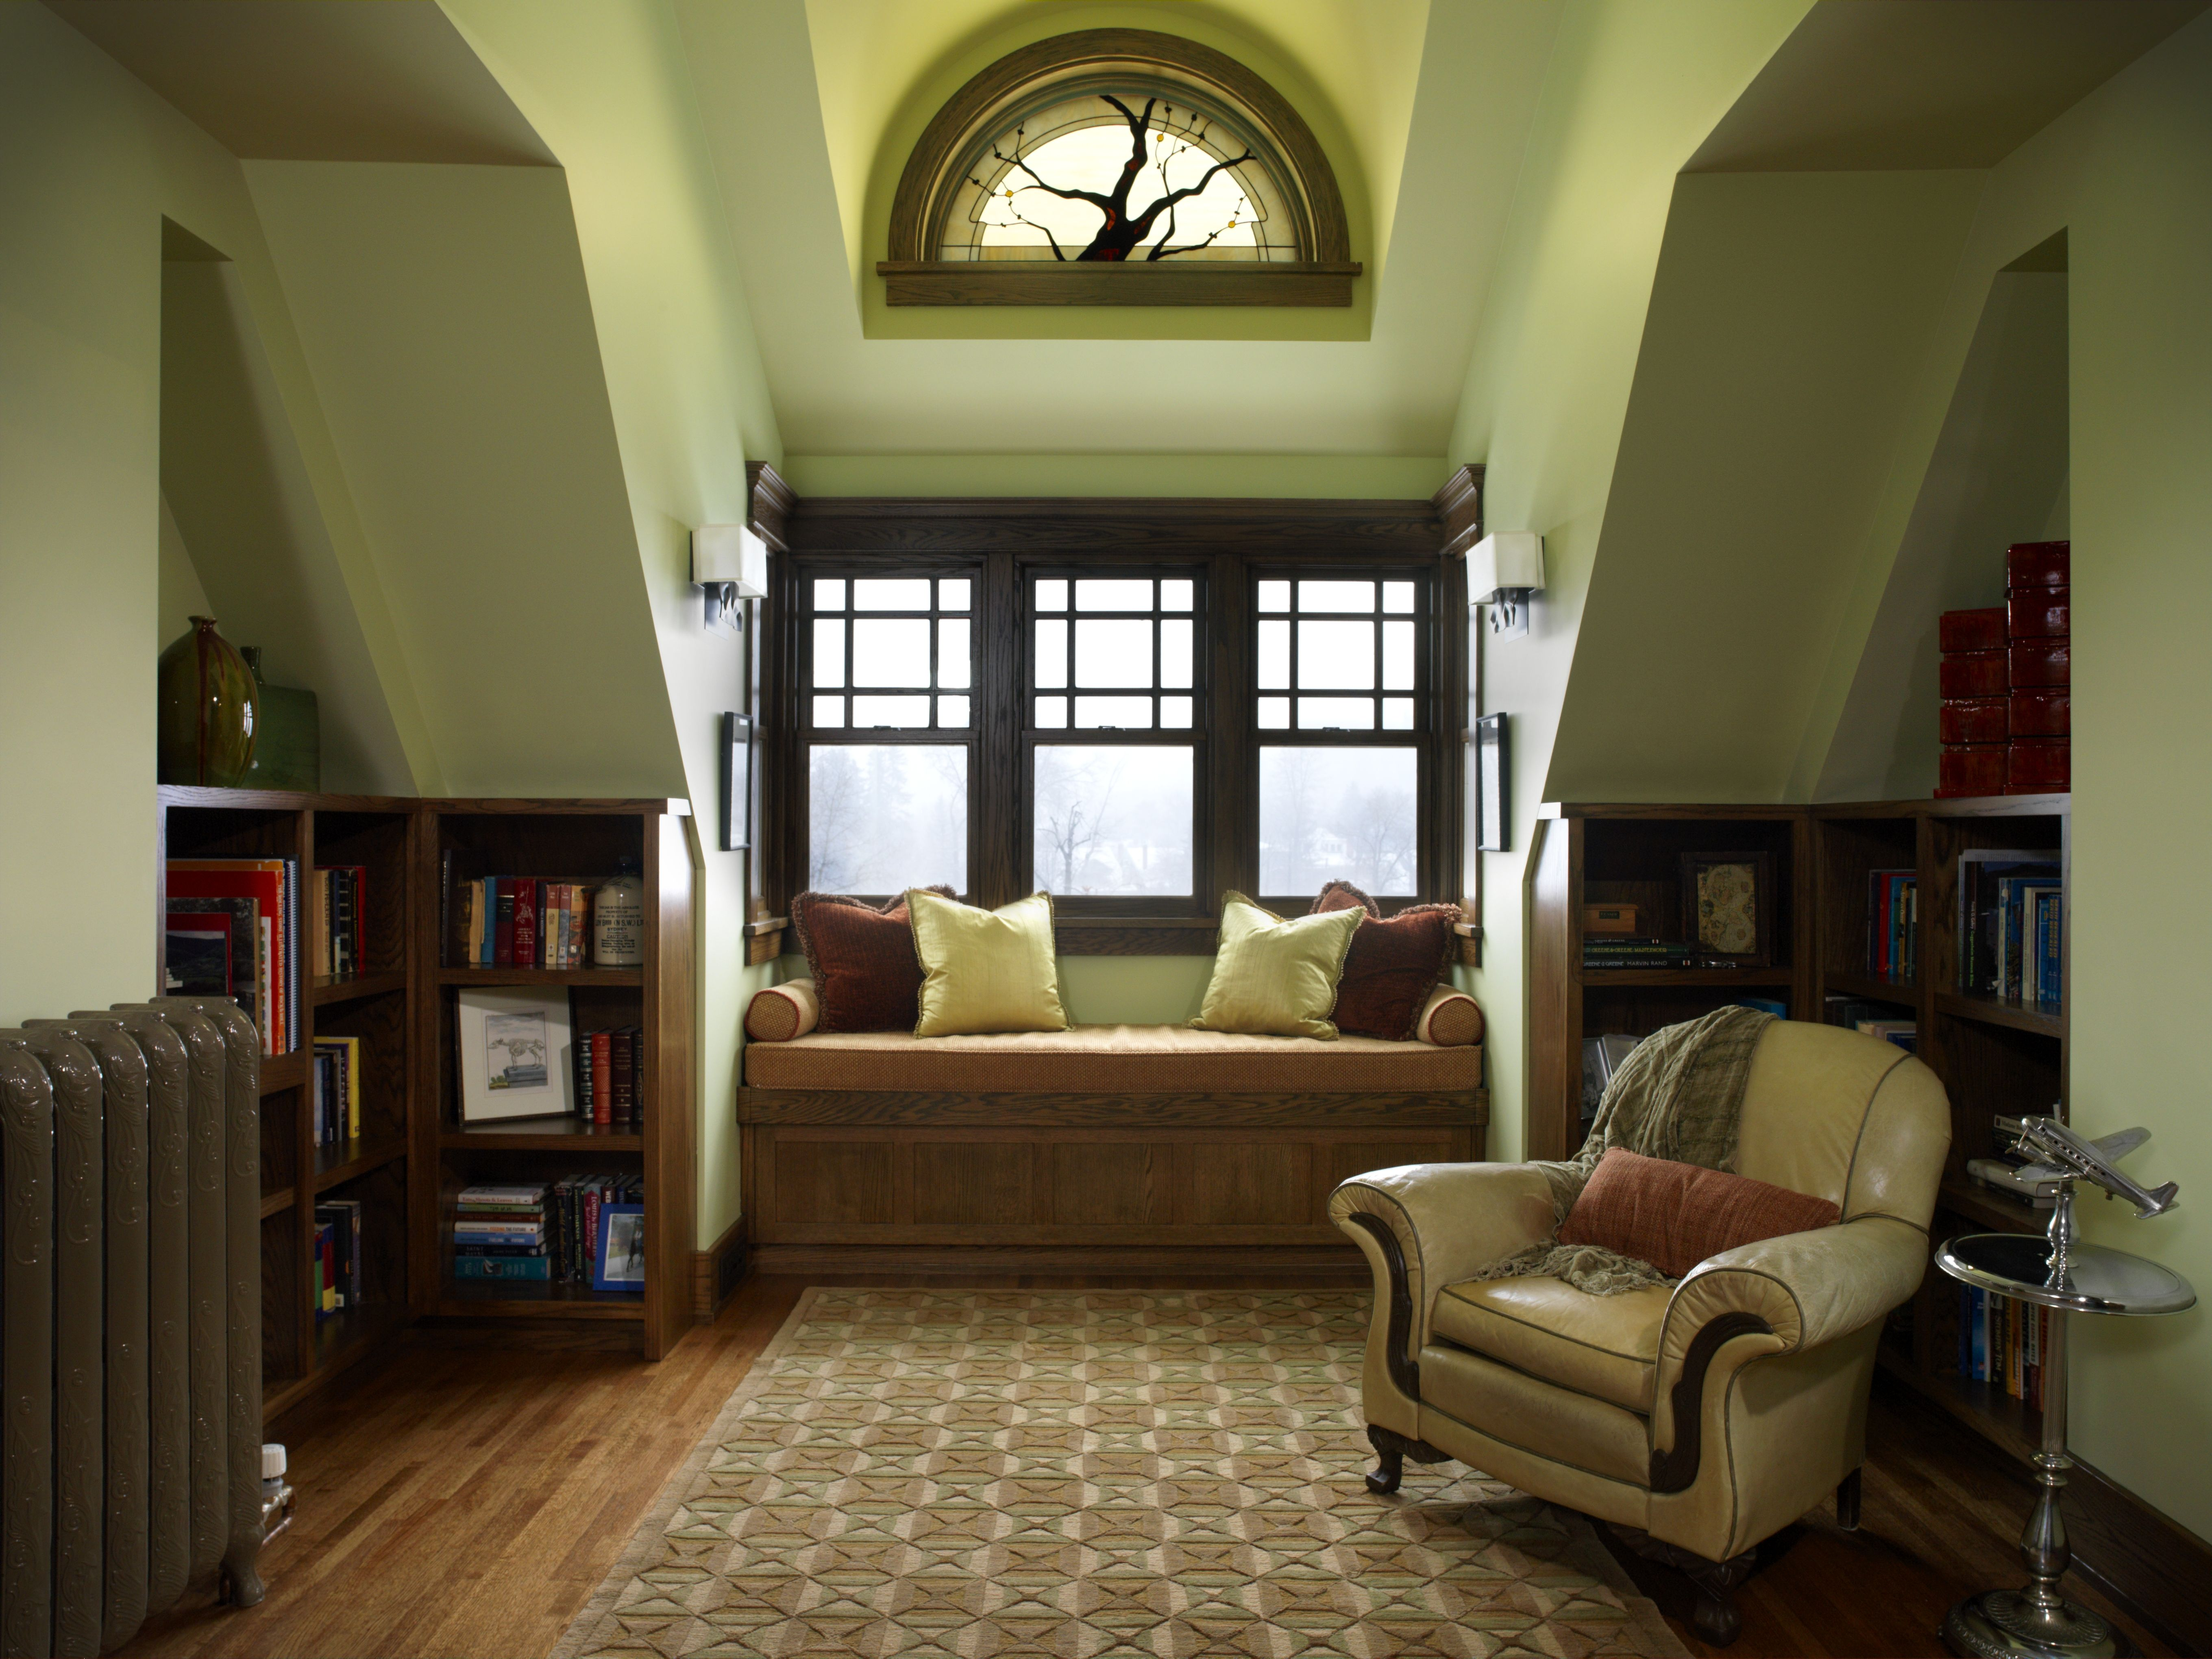 Arts and crafts style windows - A Reading Nook In A Rennovated Craftsman Home In Calgary